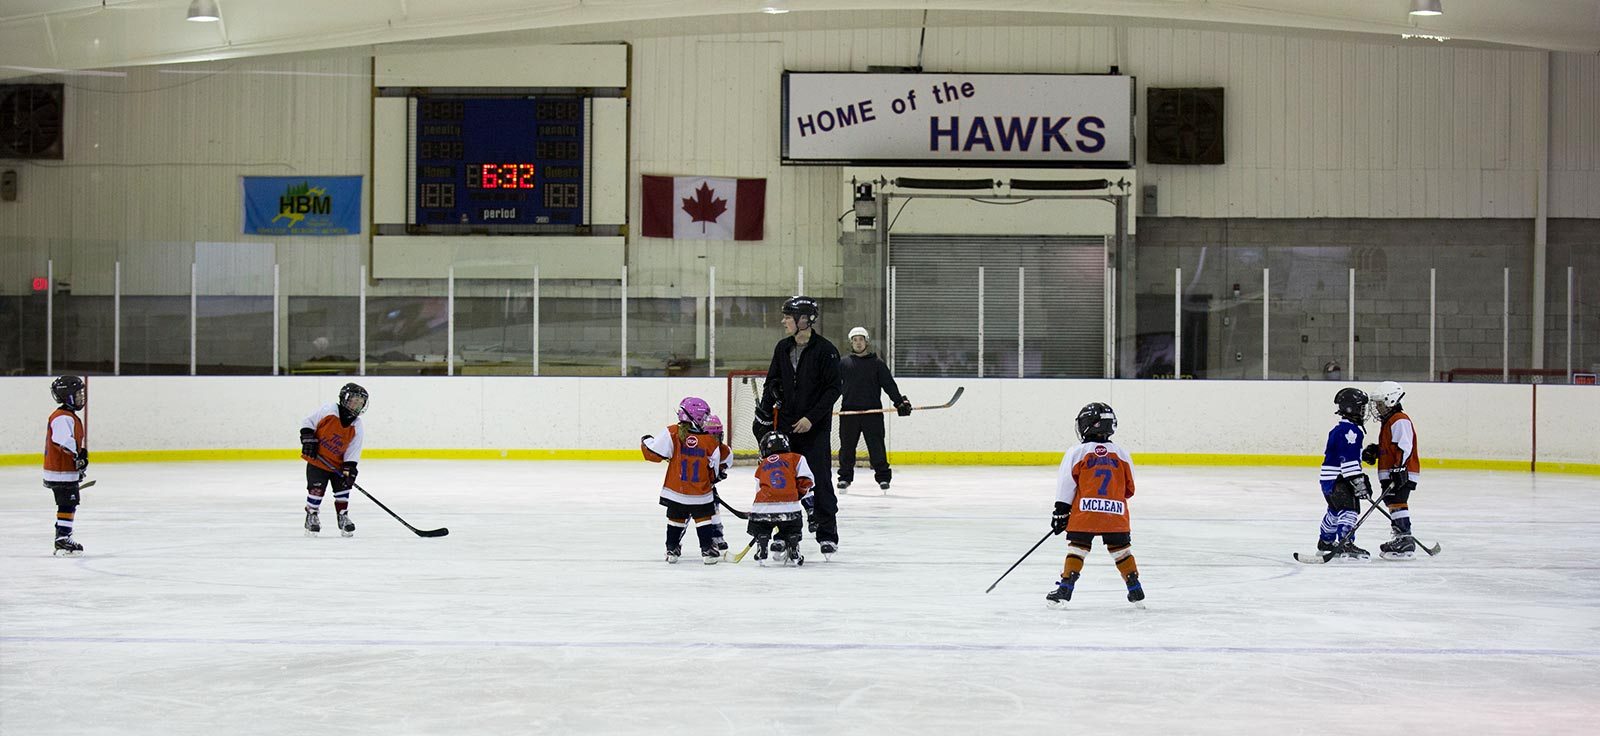 View of children practicing hockey at Arena